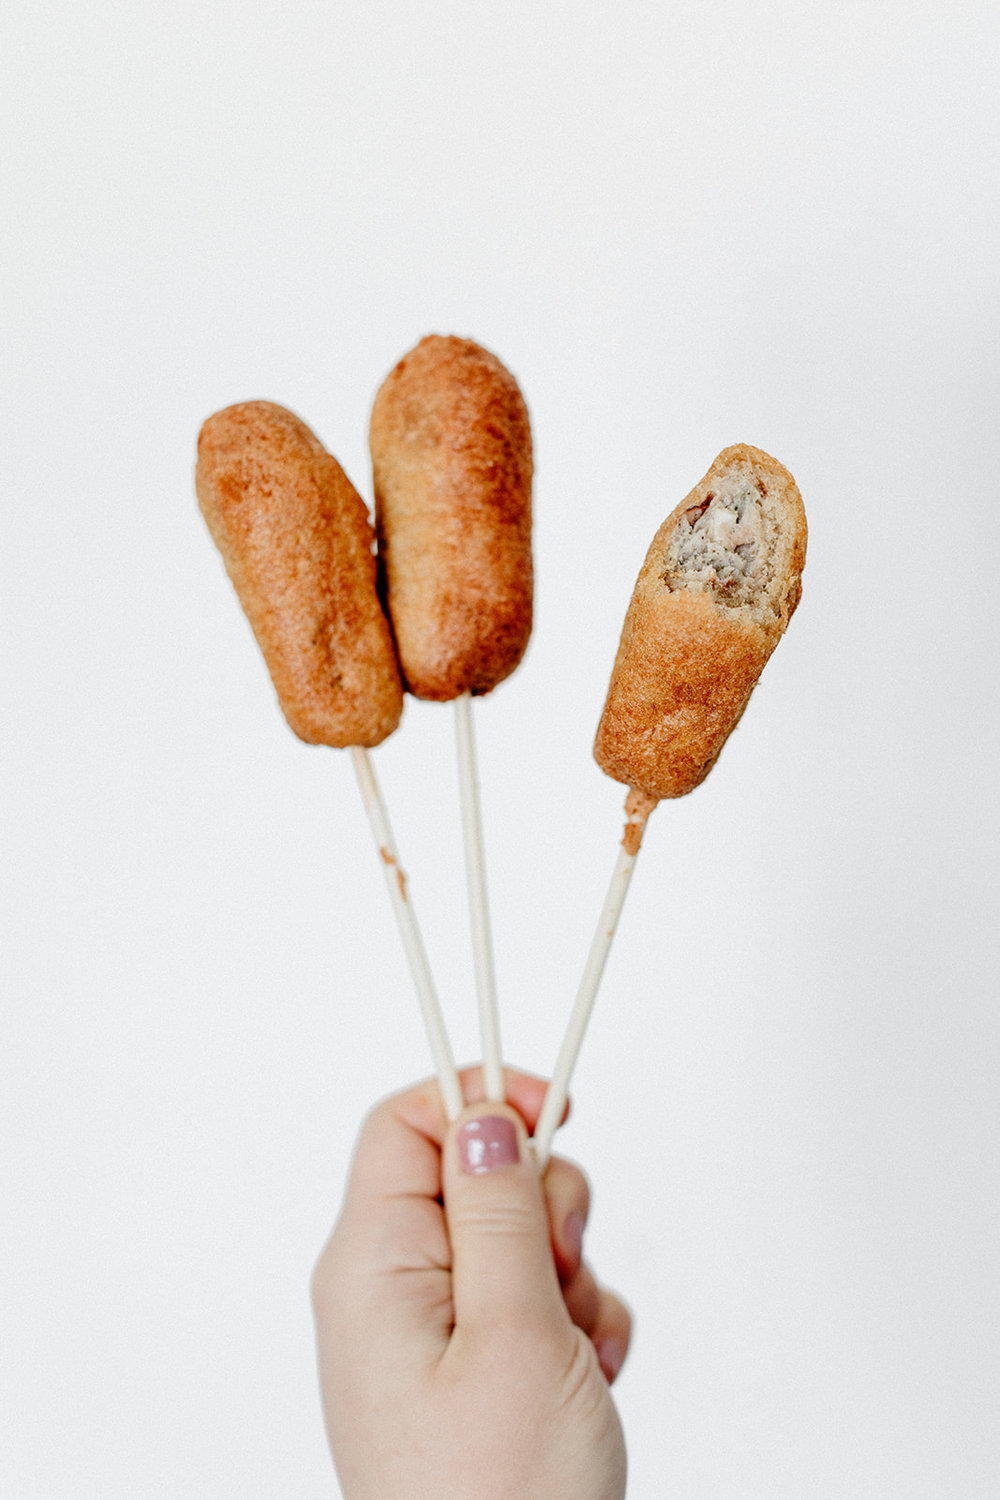 3-6-19-molly-yeh-pancakes-and-sausage-on-a-stick-1.jpg